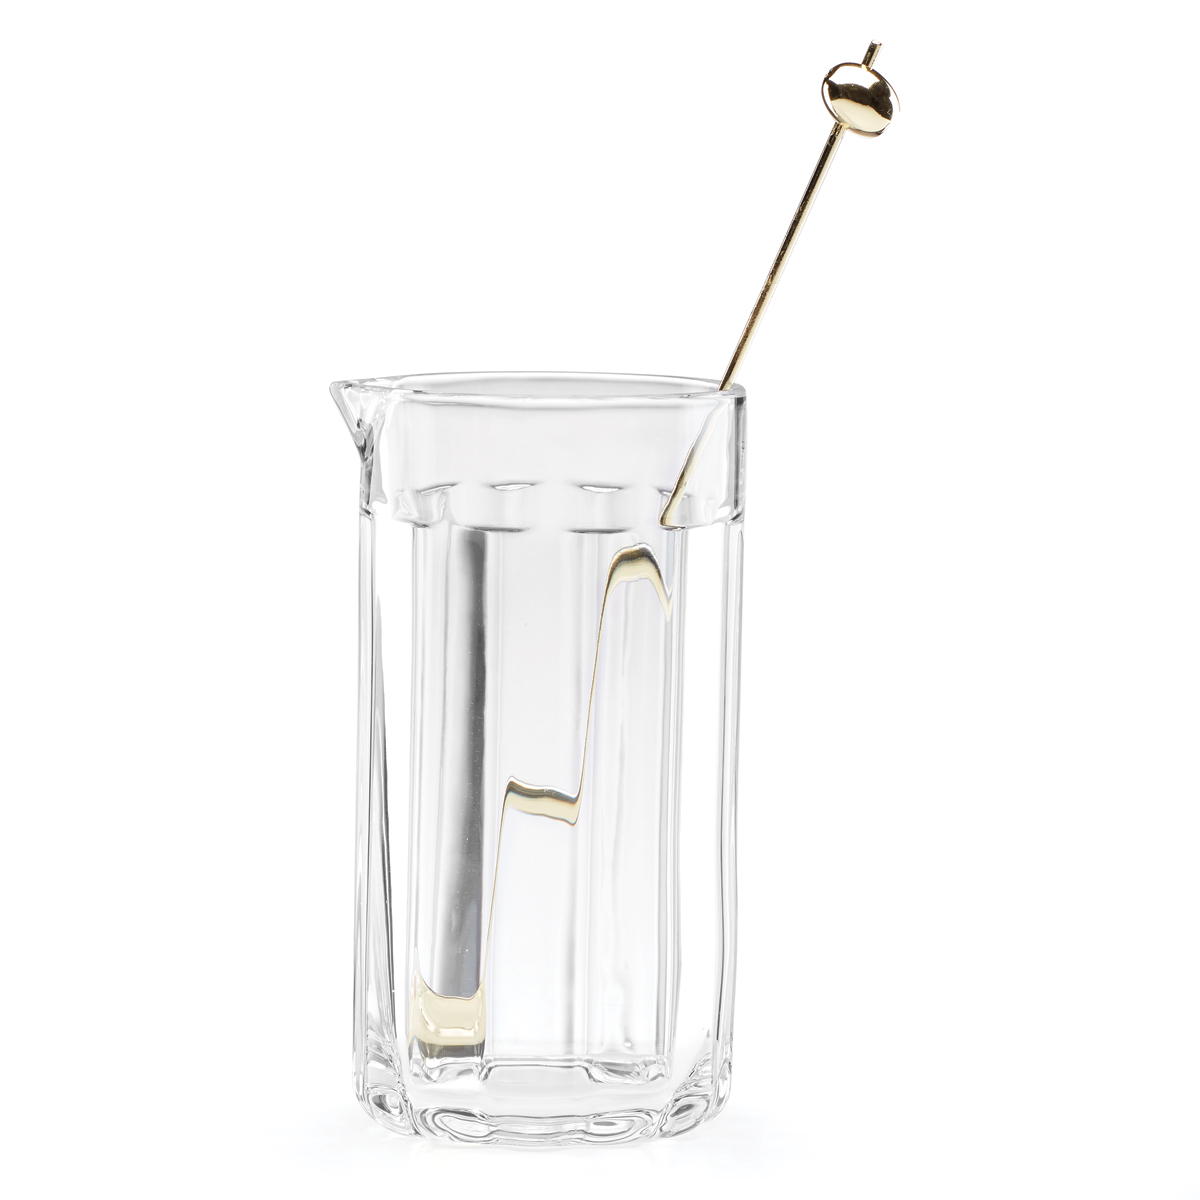 Kate Spade New York, Lenox Park Circle Clear Cktail Carafe With Stirrer